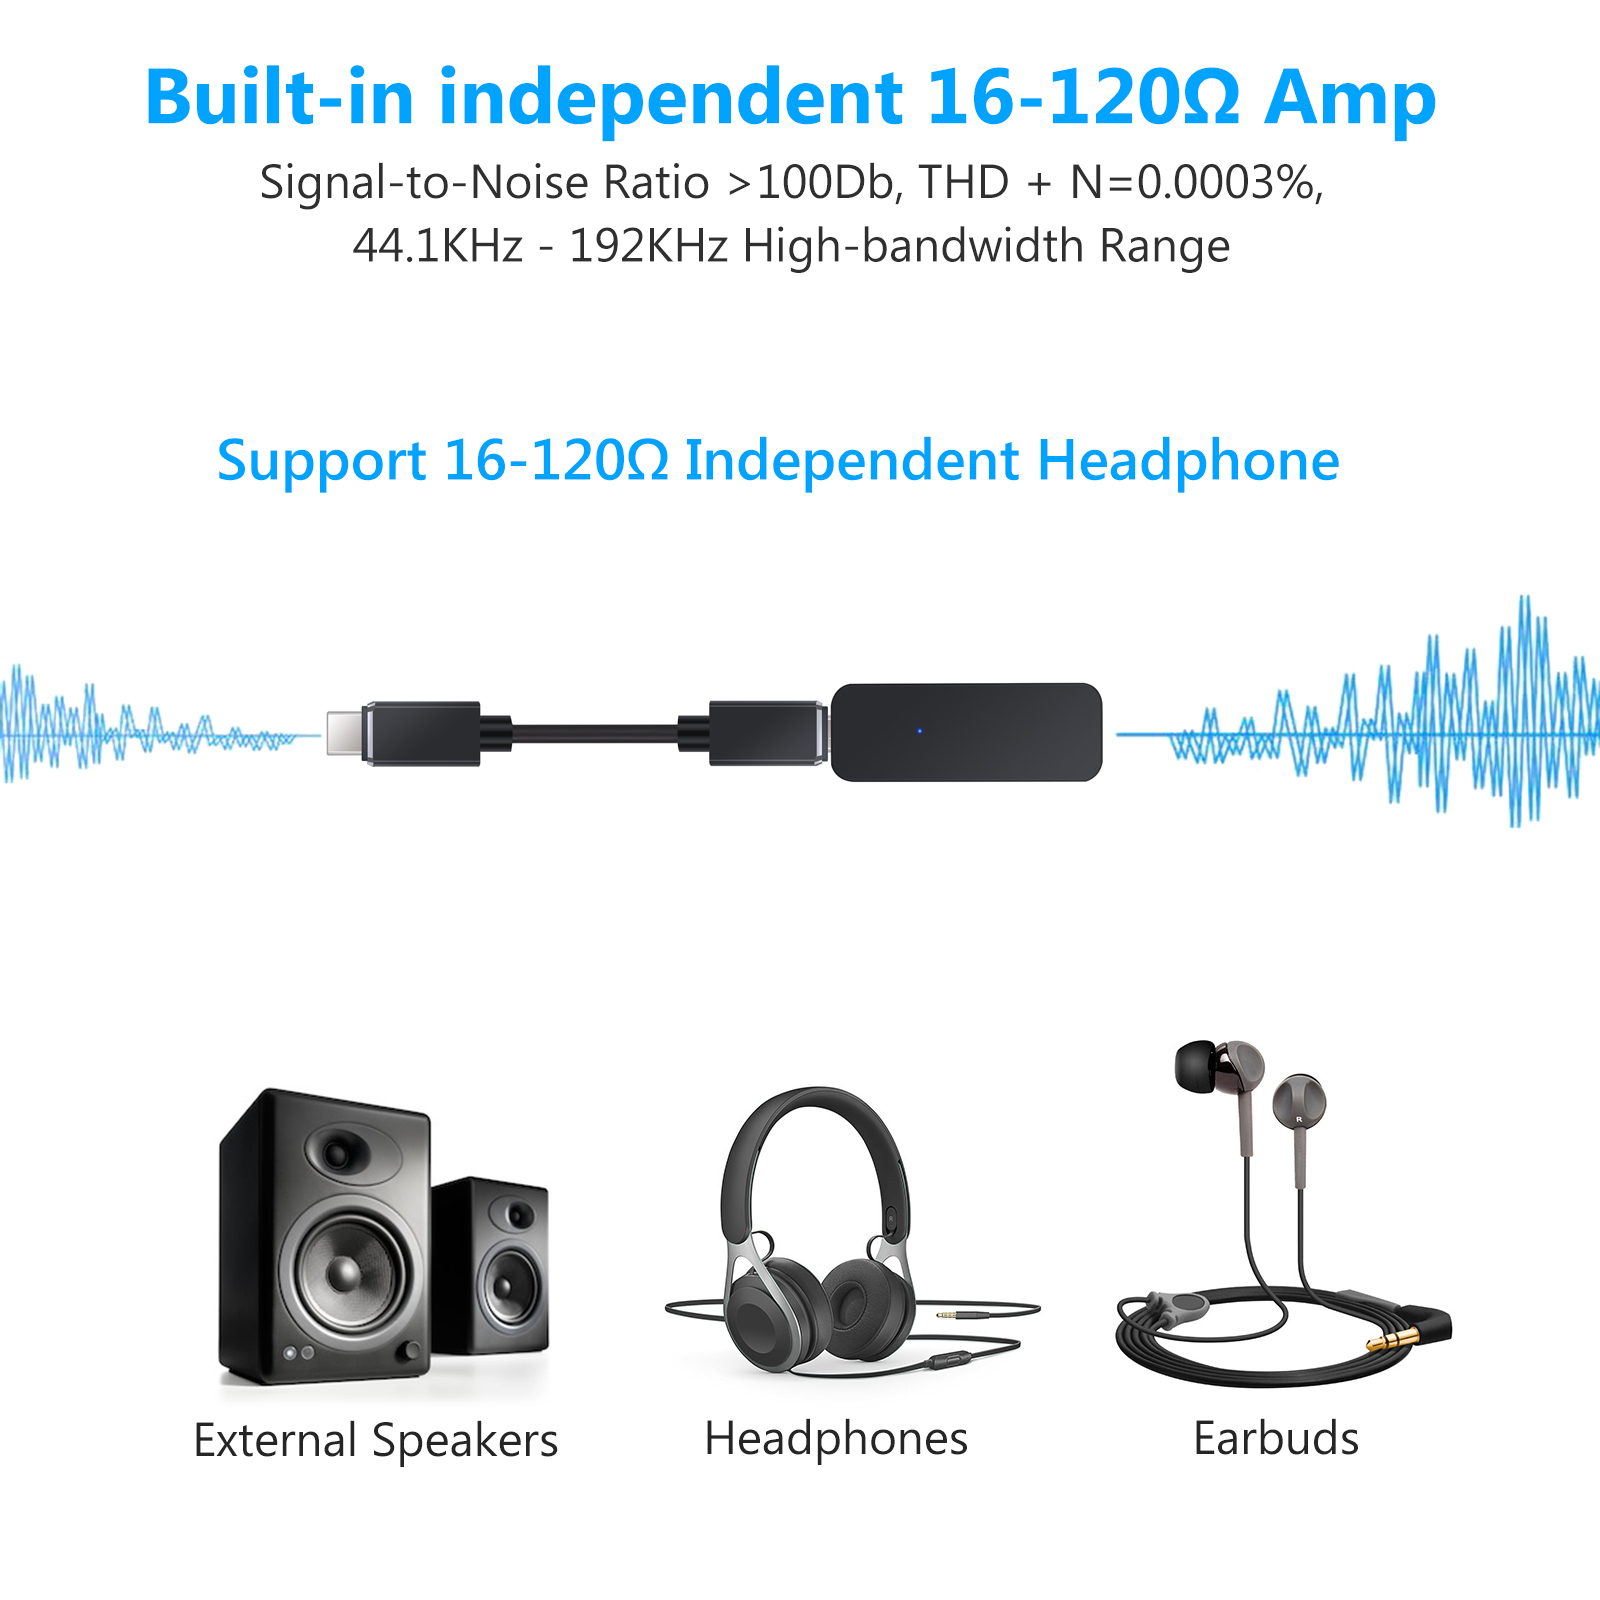 eSYNiC 192kHz USB C to 3.5mm DAC Converter Portable Headphone Amplifier Type C to 3.5mm Headphone Adapter Amp For Android iphone 2